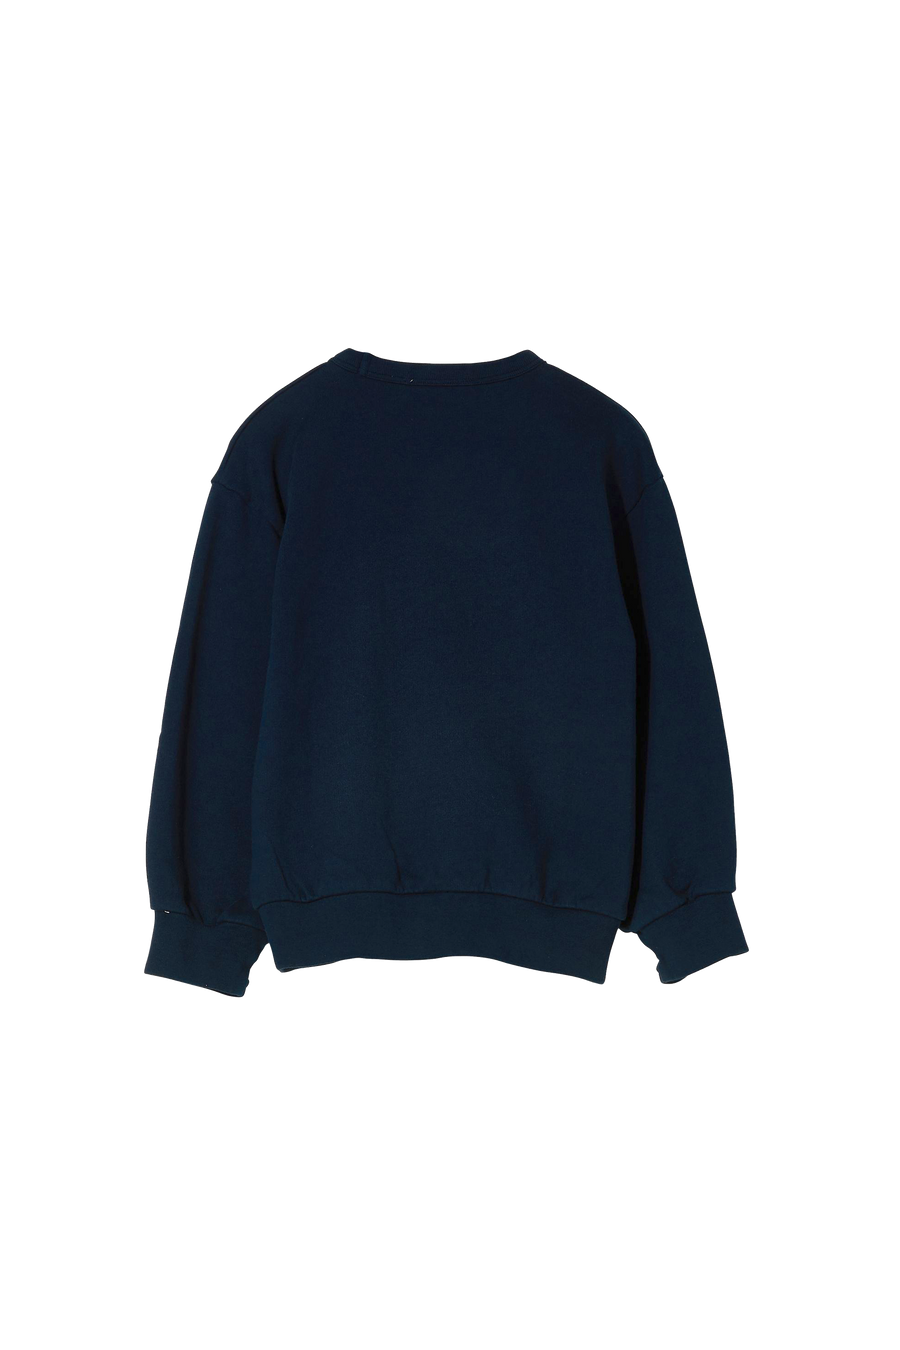 WIND Navy Macaroni - Loose Sweater